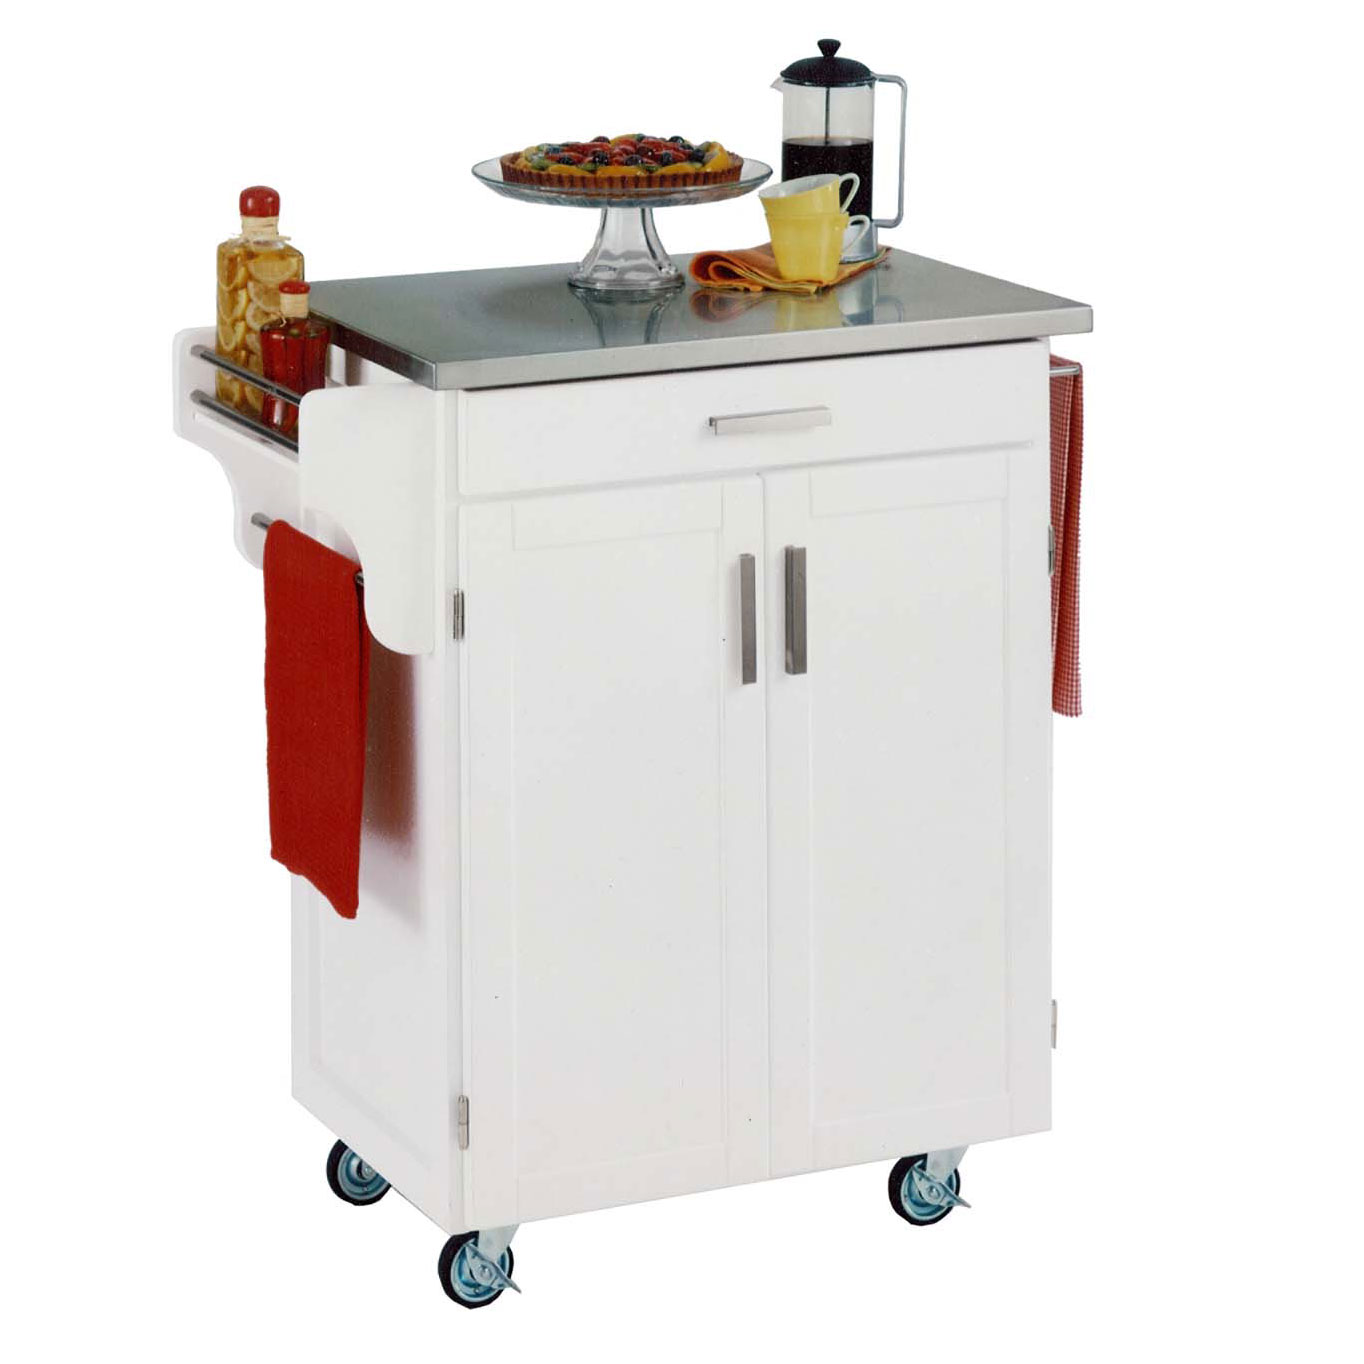 Whitel Wood Cuisine Kitchen Cart with Stainless Steel Top, WHITE STAINLESS STEEL